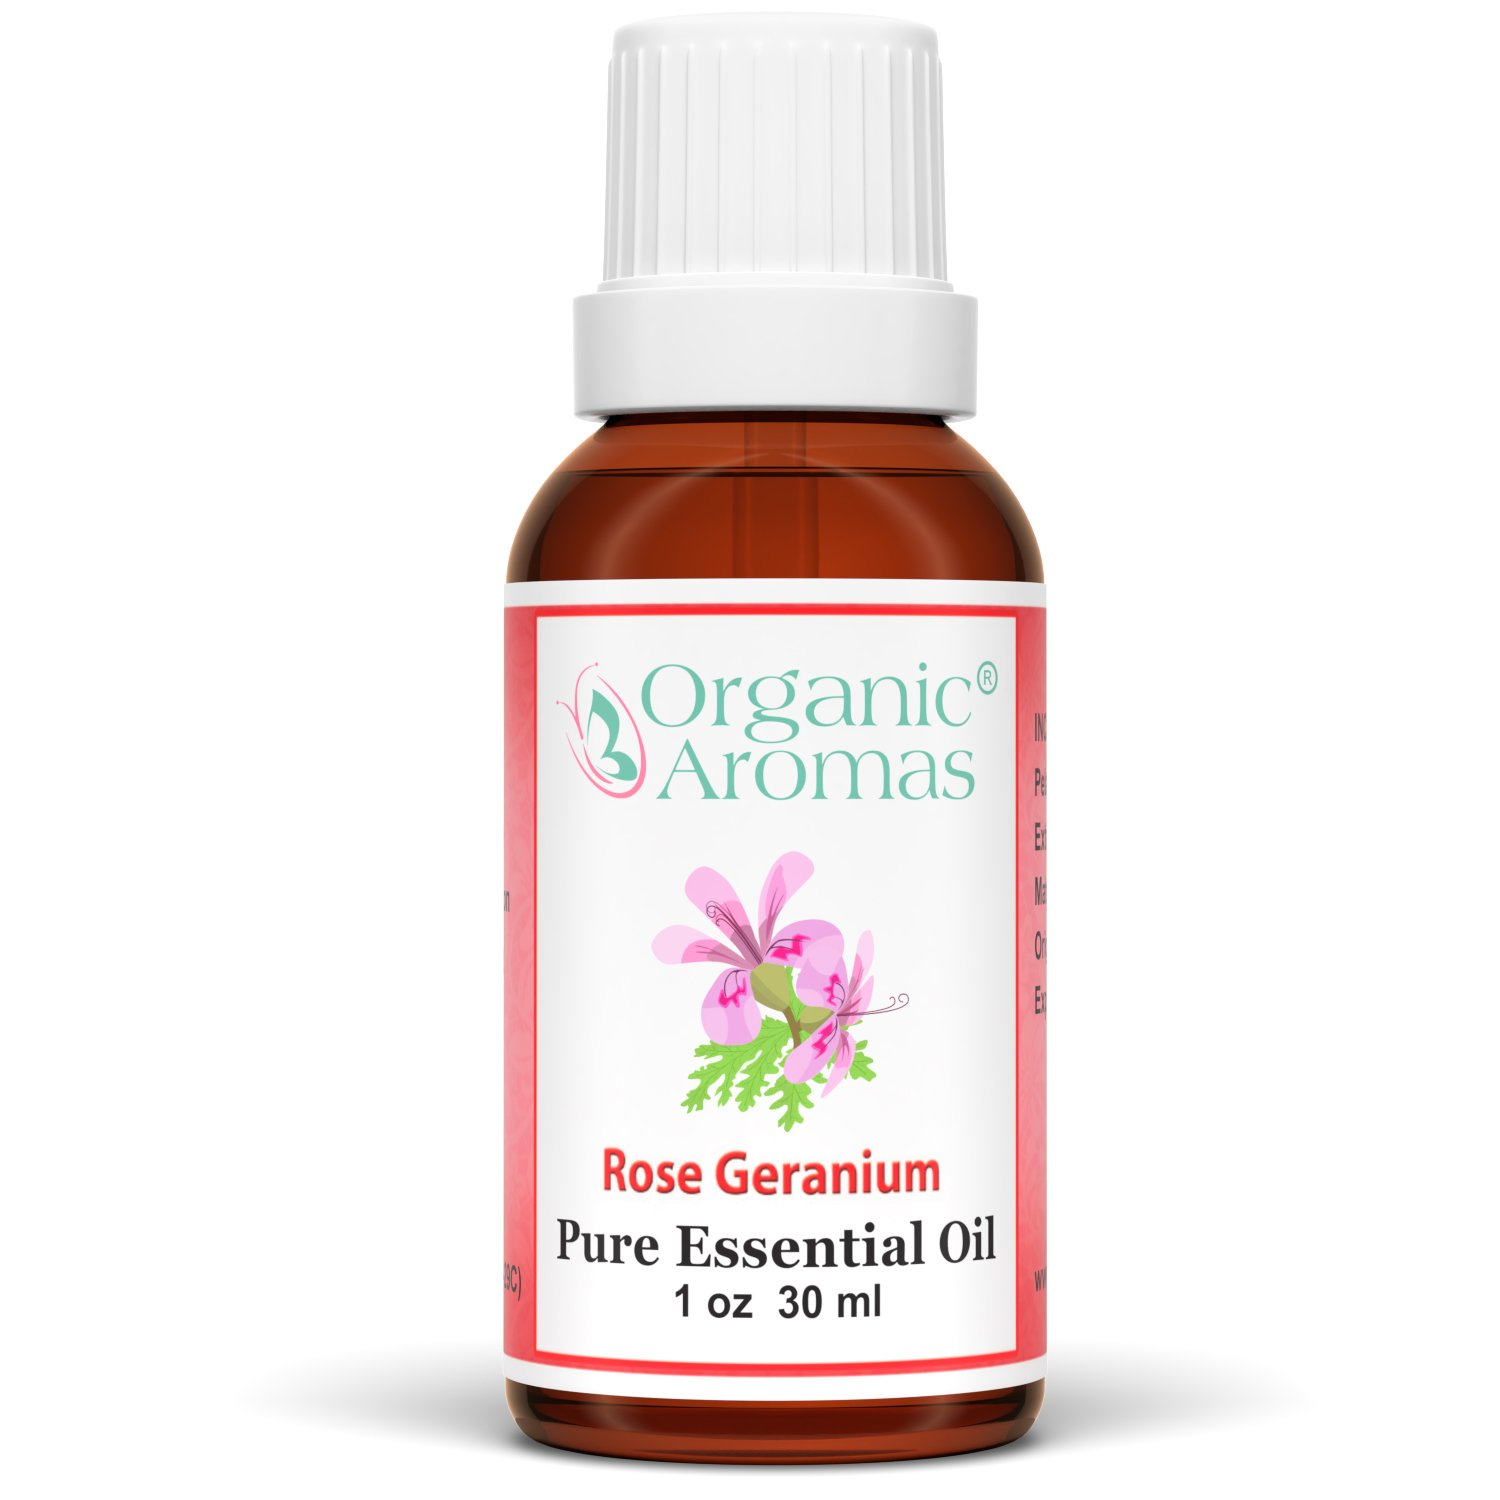 Rose Geranium Essential Oil 100% Pure for Professional Aromatherapy - Therapeutic Grade - Works well with Organic Aroma Diffusers - 30 ml bottles